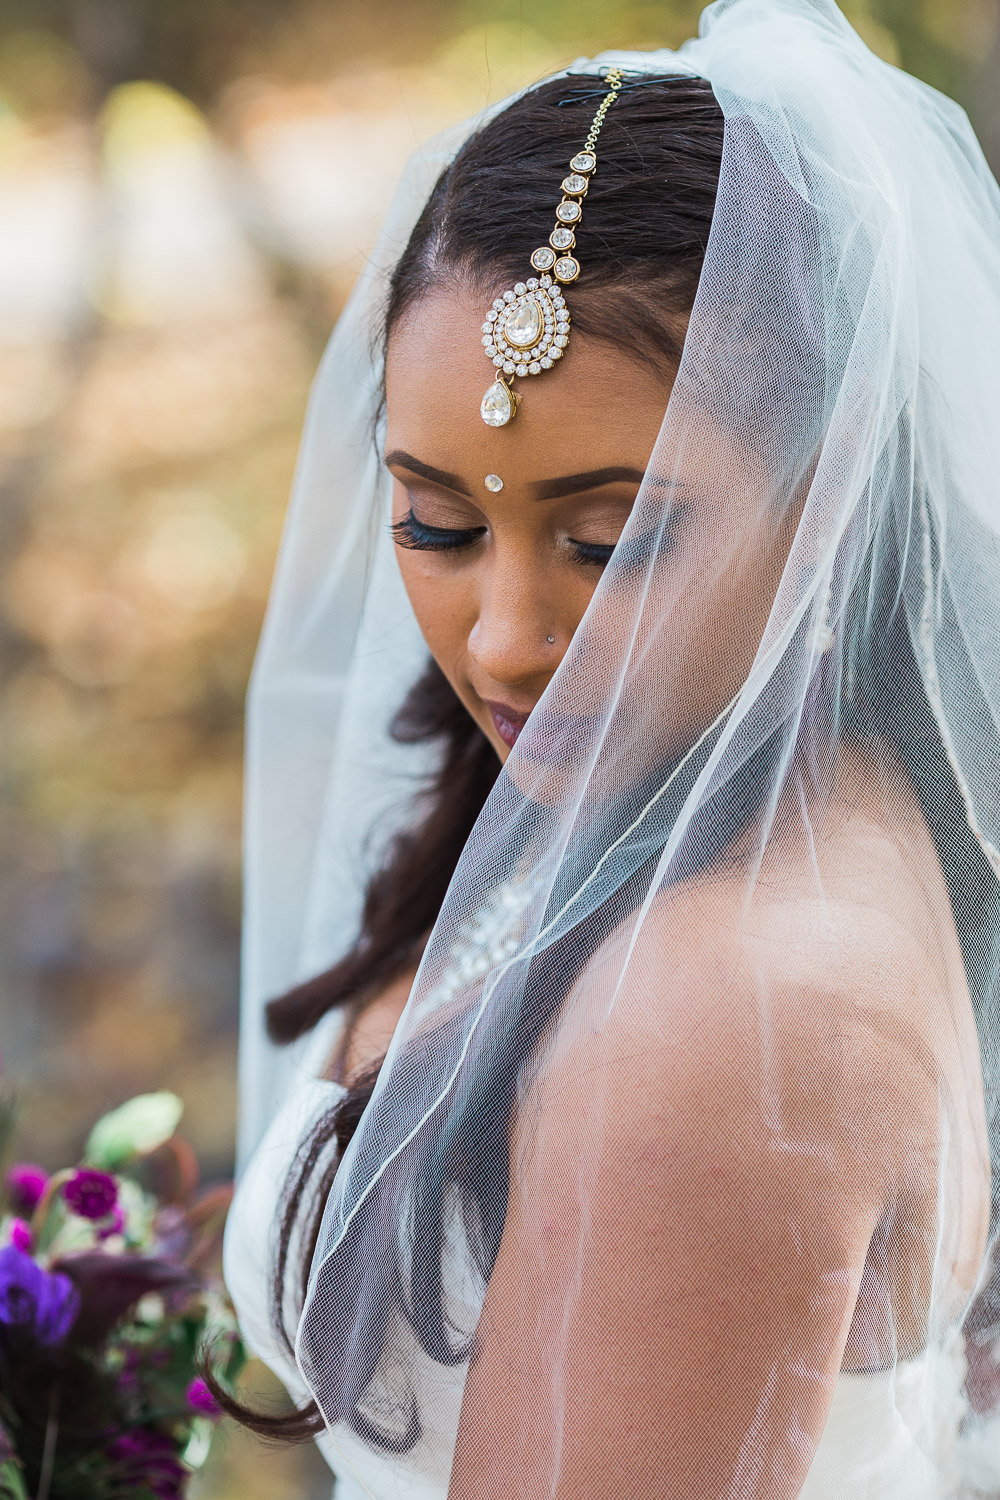 Indian traditional bride details portrait destination wedding California couple